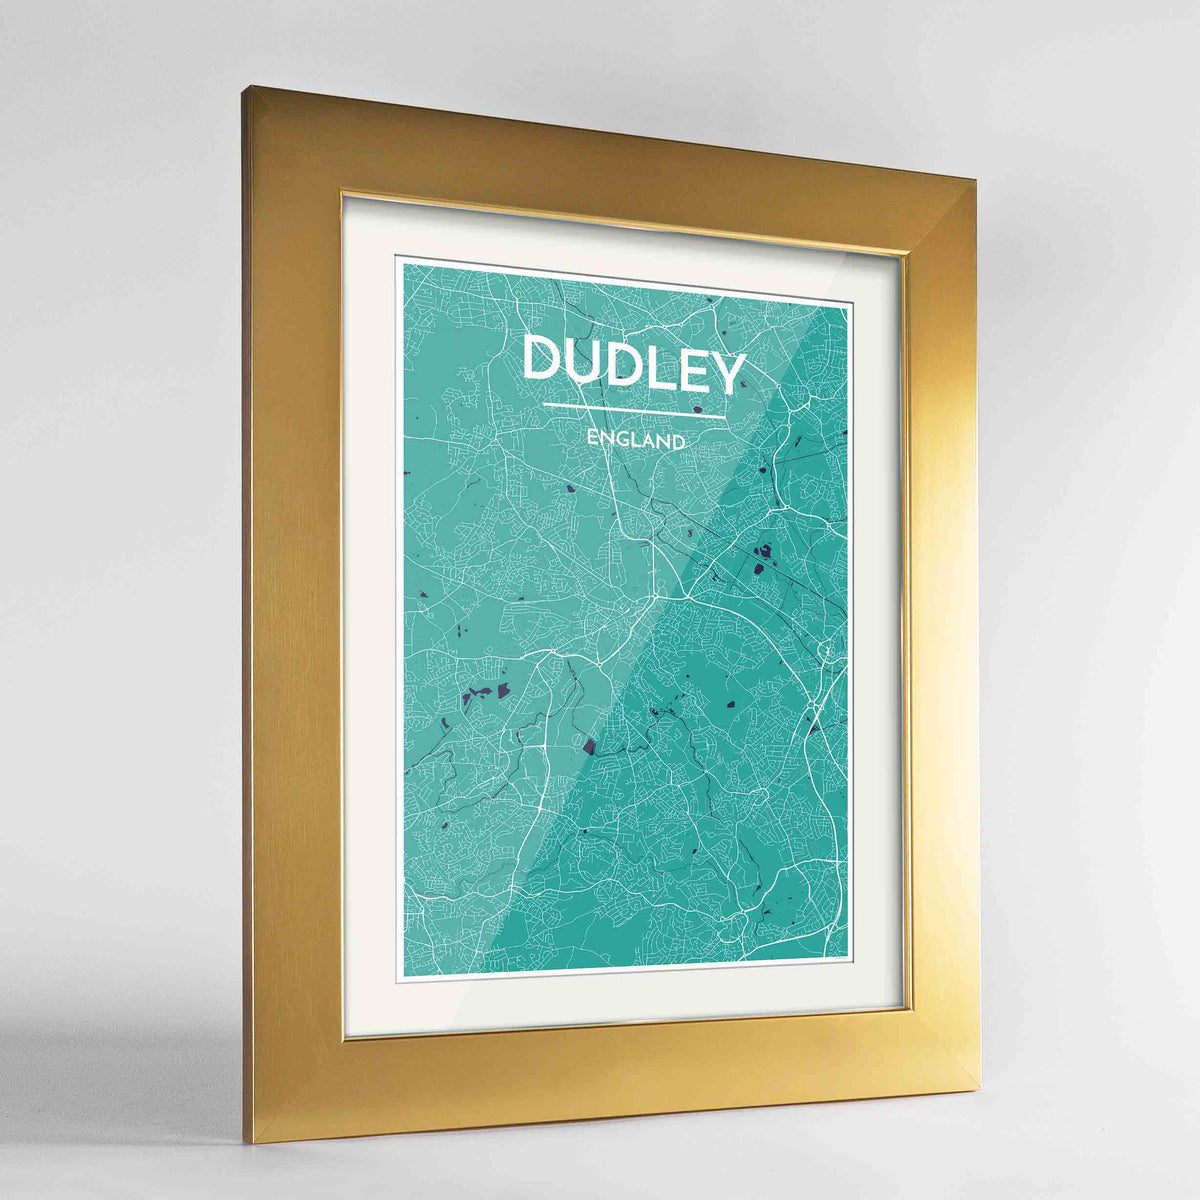 "Framed Dudley Map Art Print 24x36"" Gold frame Point Two Design Group"